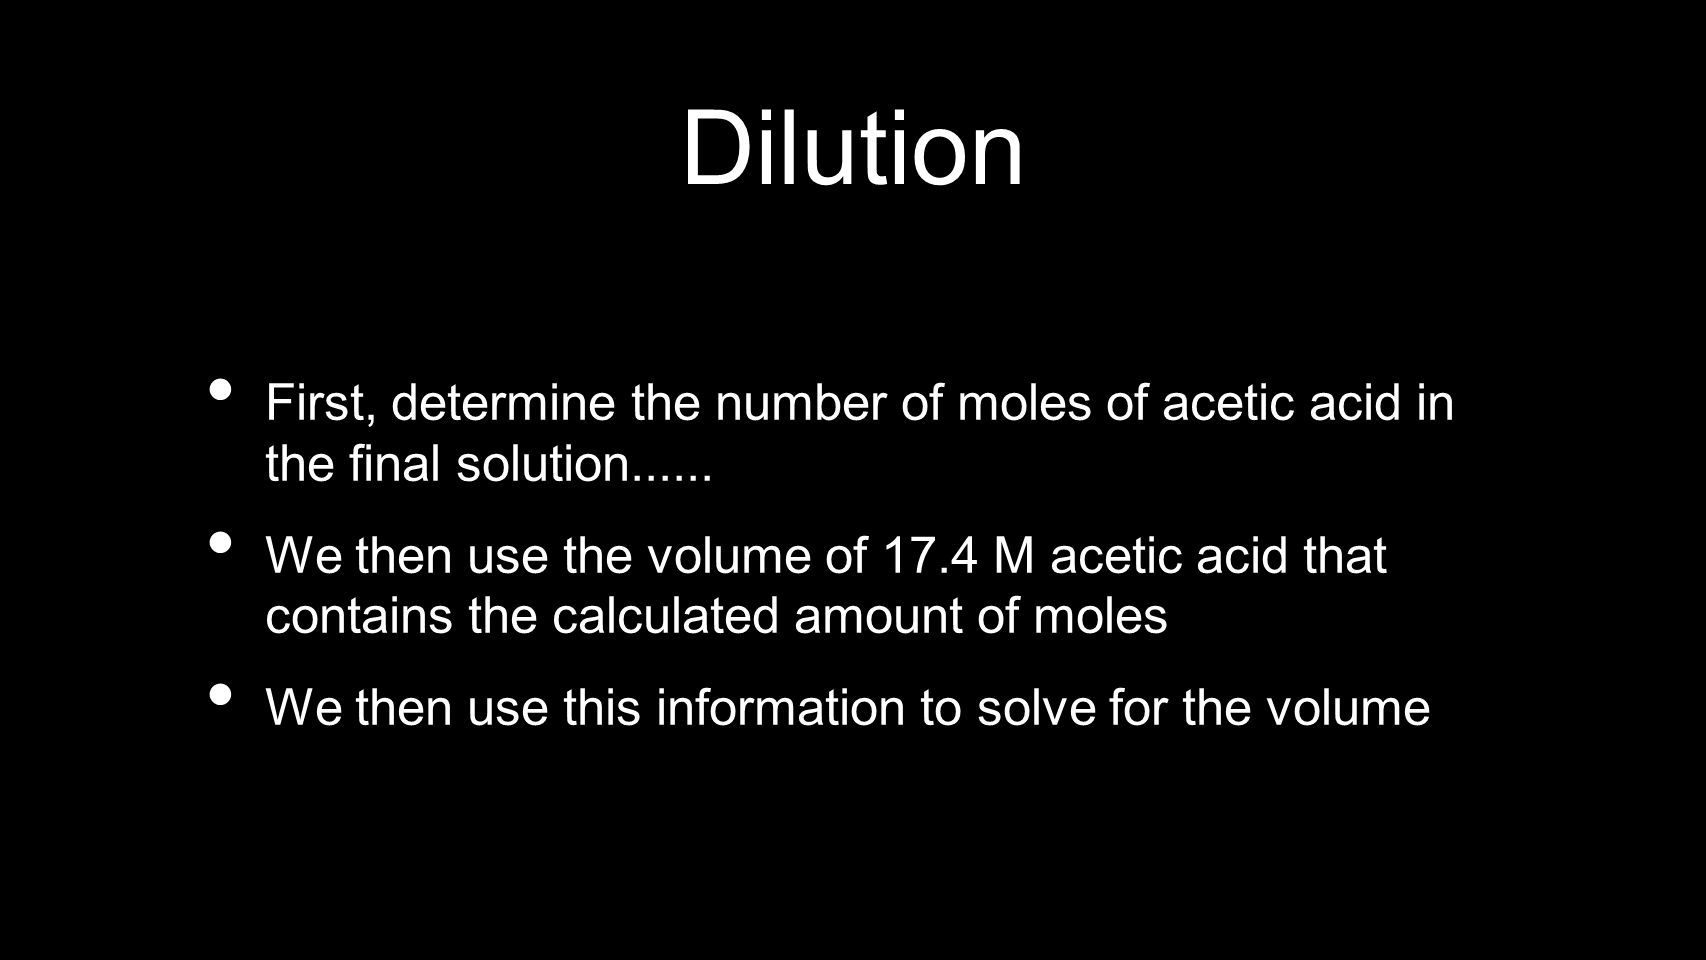 Dilution First, determine the number of moles of acetic acid in the final solution......